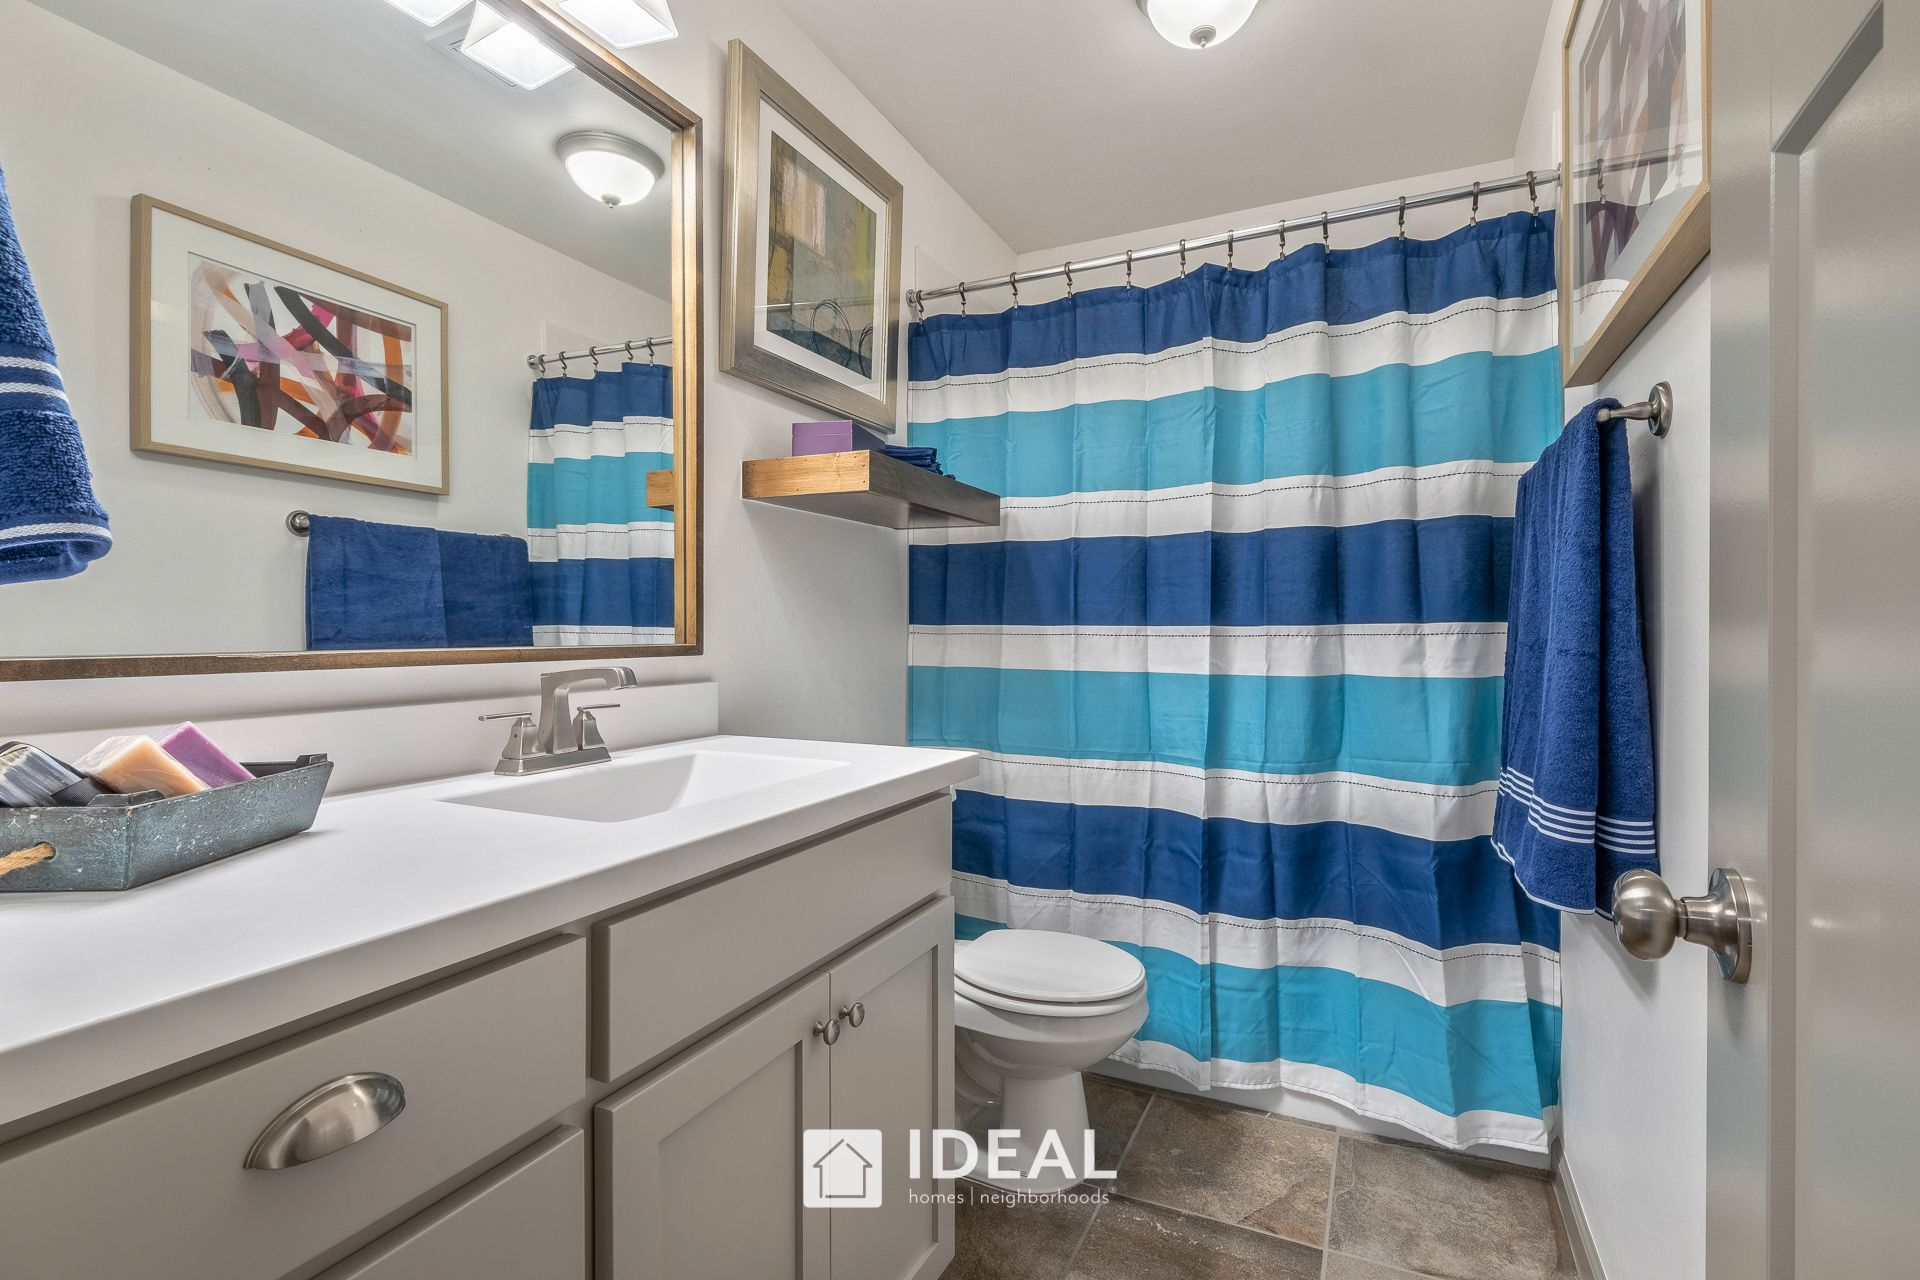 Bathroom featured in the Holloway By Ideal Homes in Oklahoma City, OK